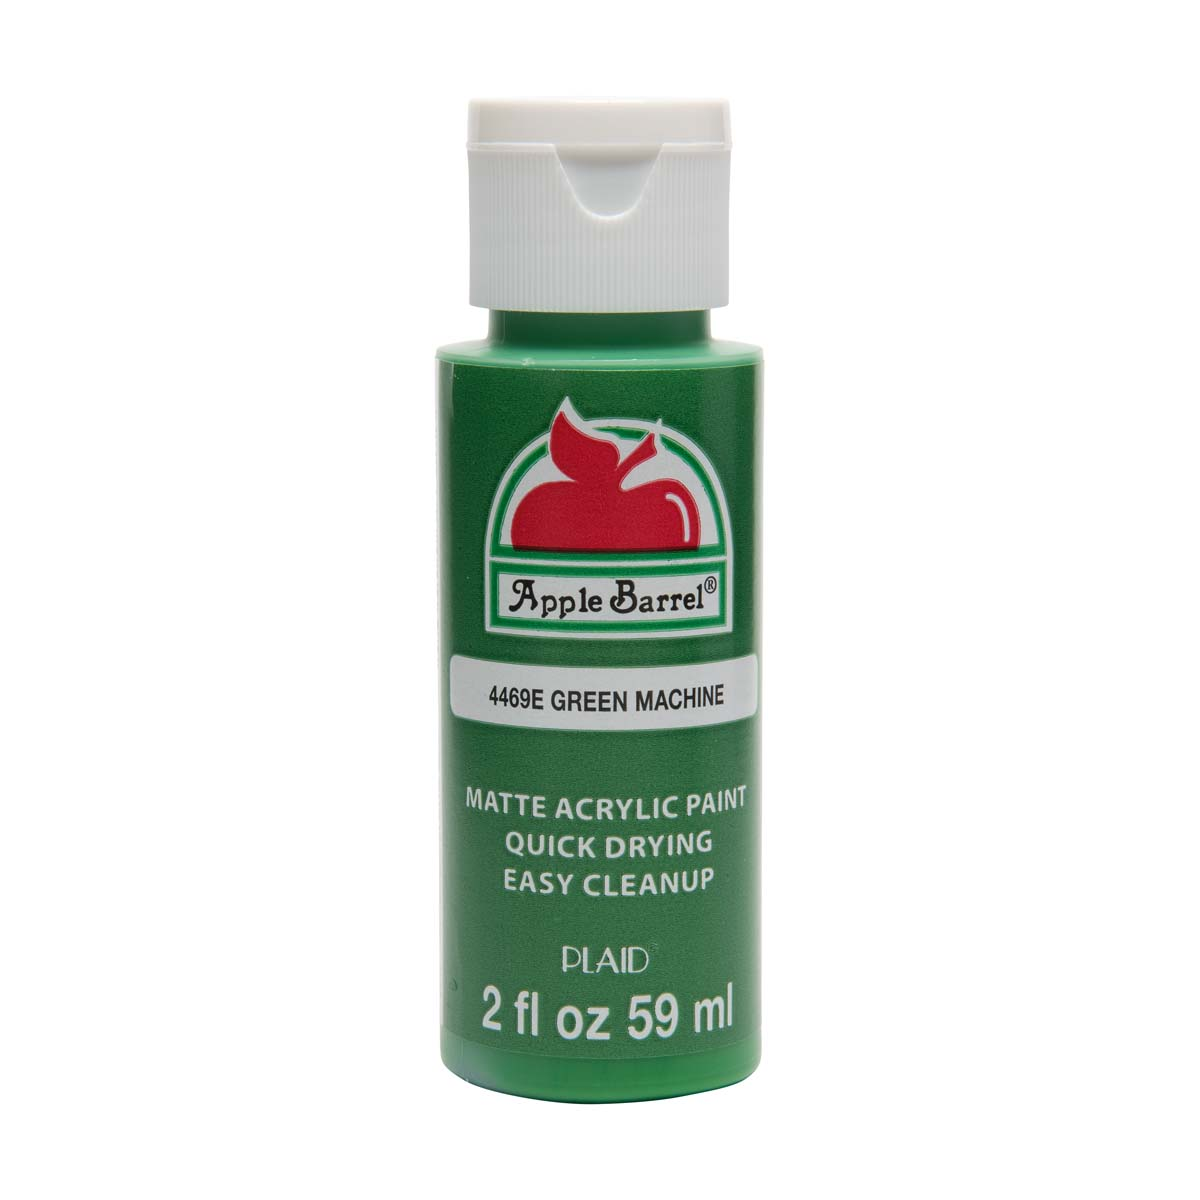 Apple Barrel ® Colors - Green Machine, 2 oz. - 4469E